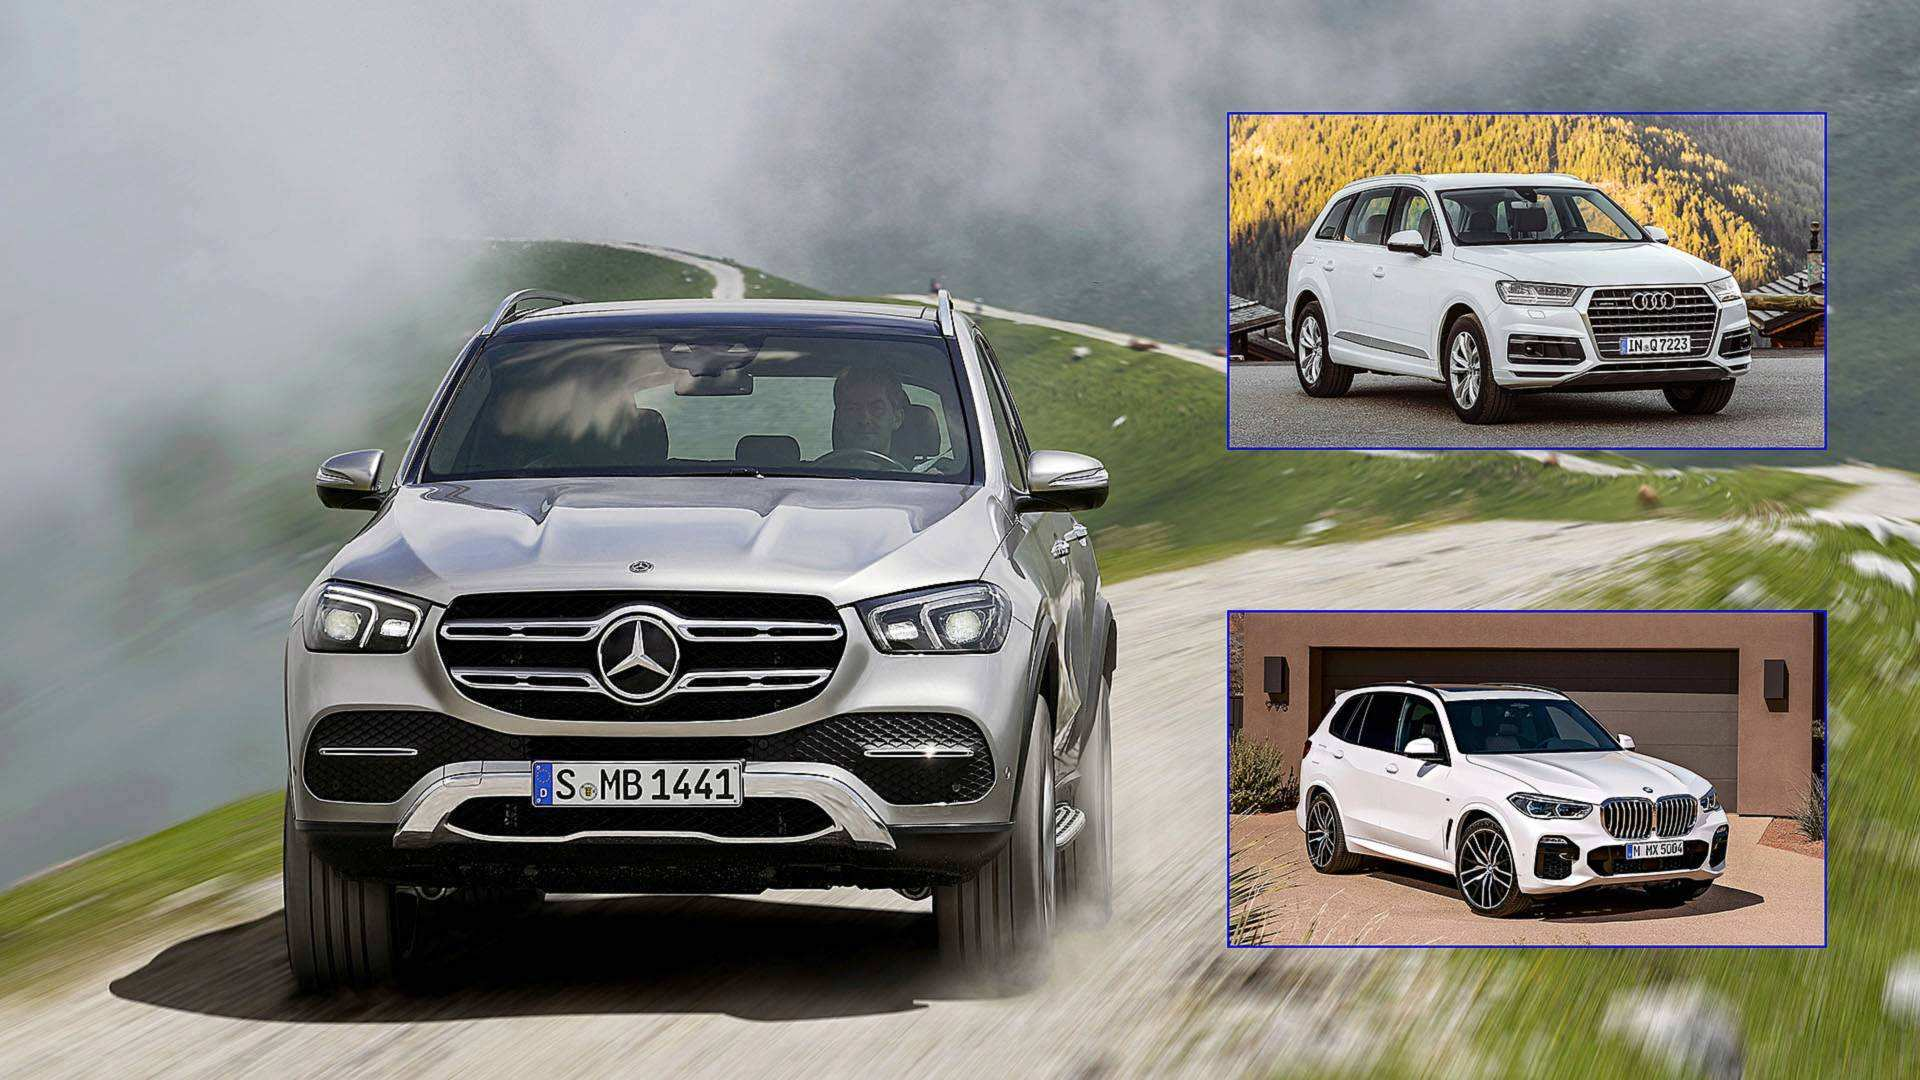 94 The 2020 Gle 350 Vs BMW X5 Style for 2020 Gle 350 Vs BMW X5